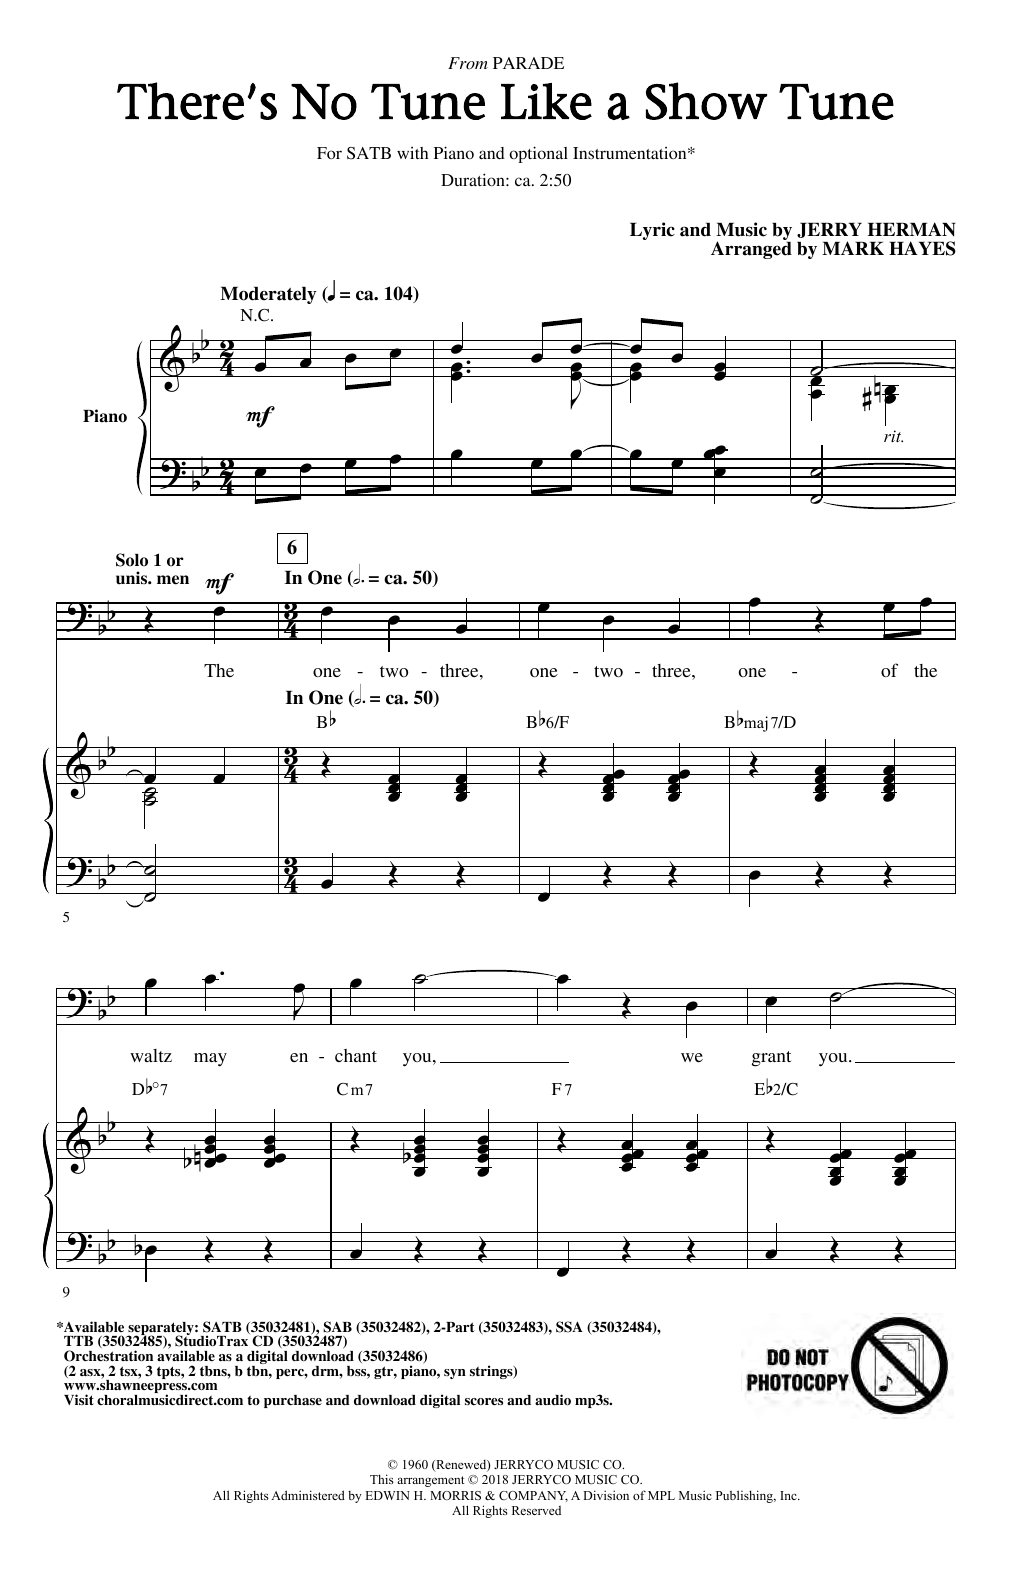 There's No Tune Like A Show Tune (arr. Mark Hayes) (SATB Choir)